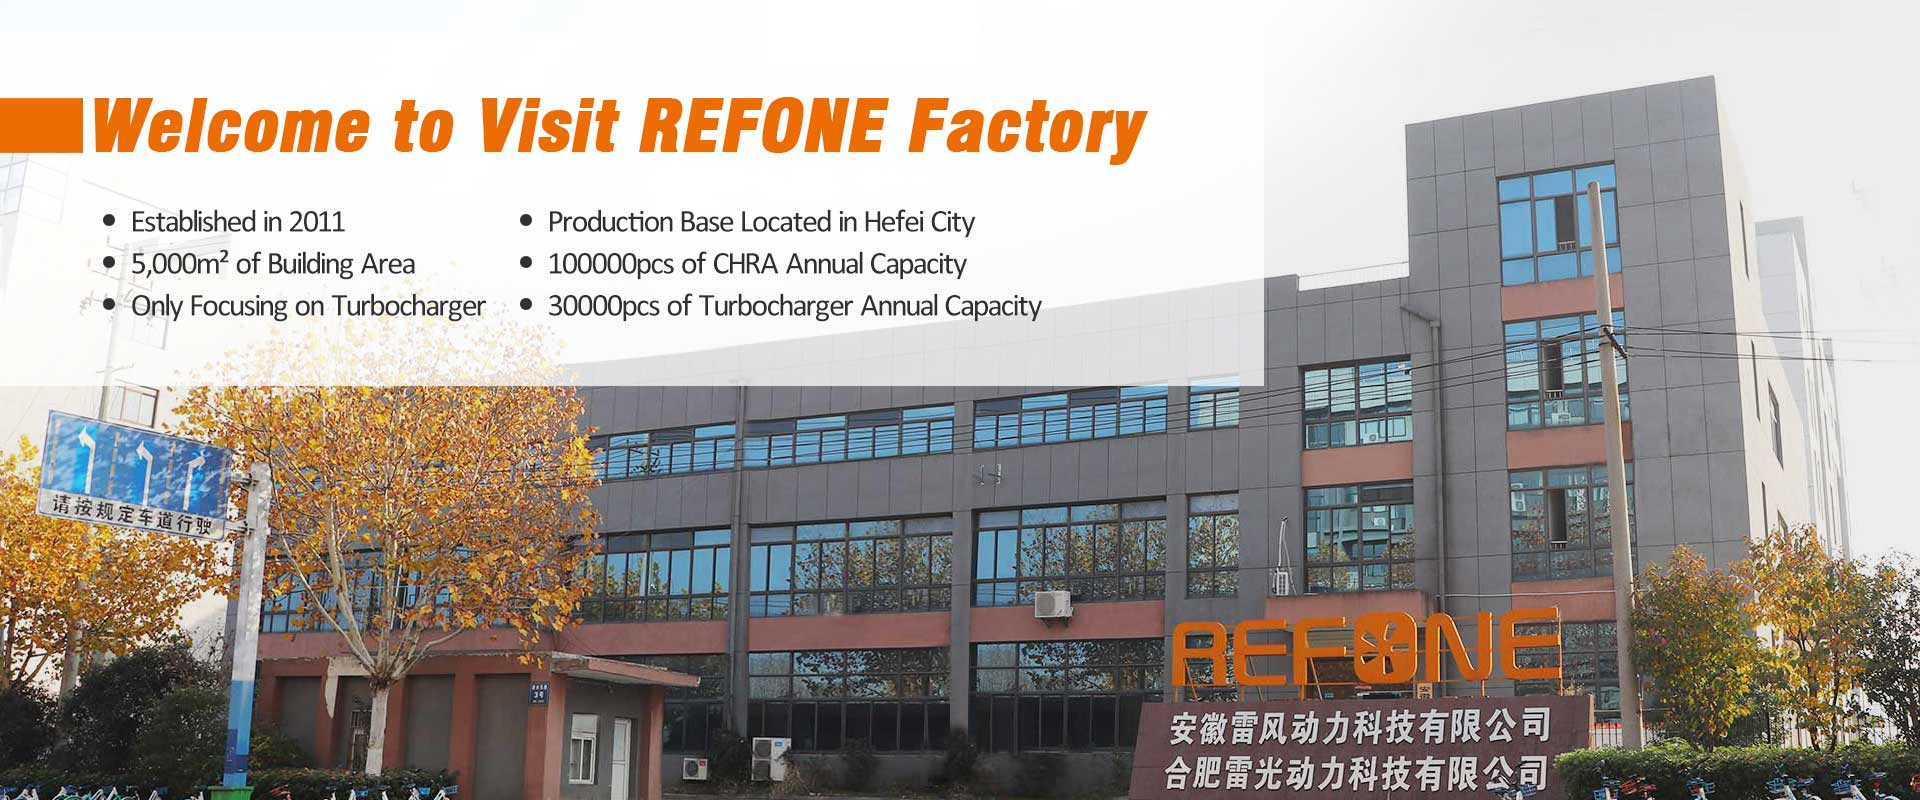 Refone Factory